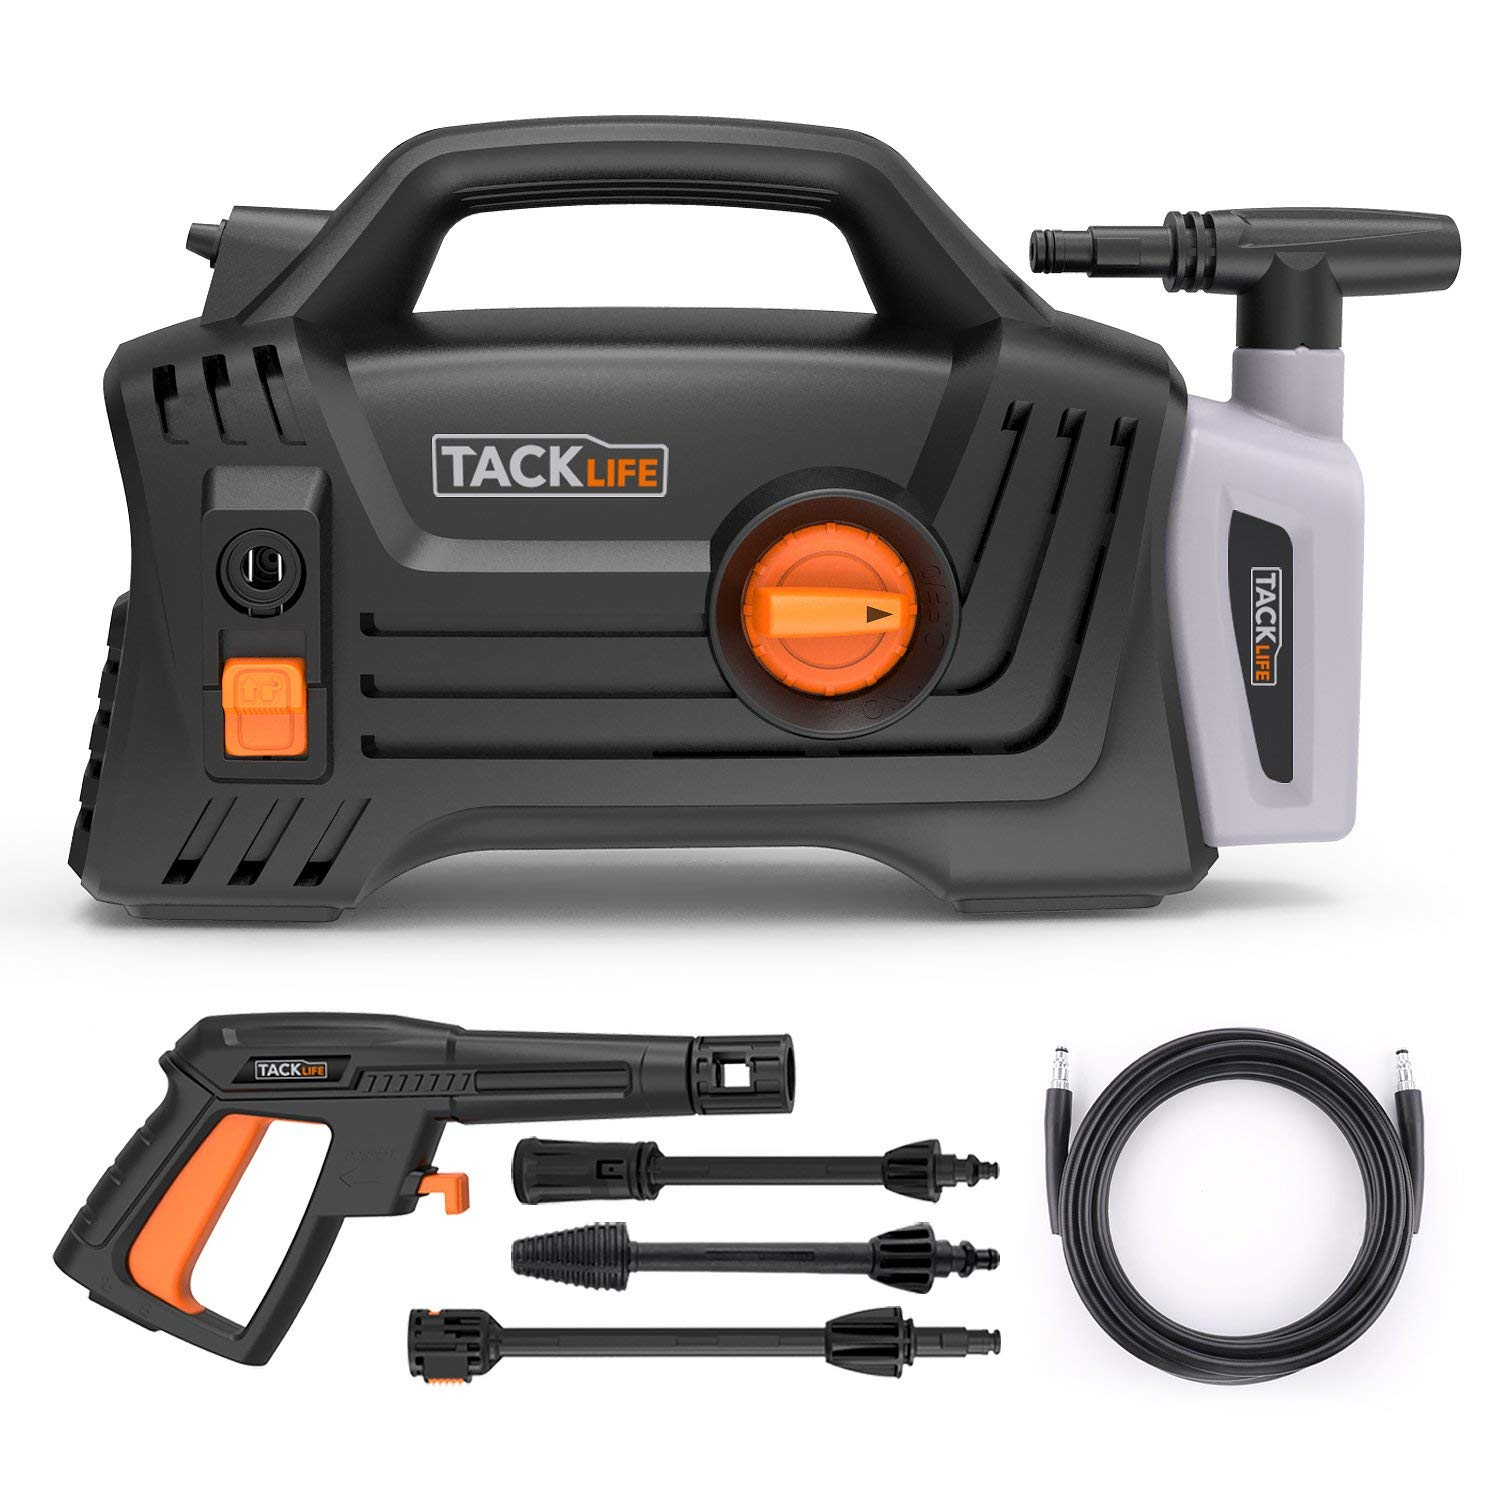 Pressure Washer, High Efficiency 1600 PSI 1.72 GPM 1400W Electric Power Washer, Lightweight and Easy to Carry with 3 Spray Wand, High pressure cleaning Car, Patio, Wall, Furniture, Barbecues and More